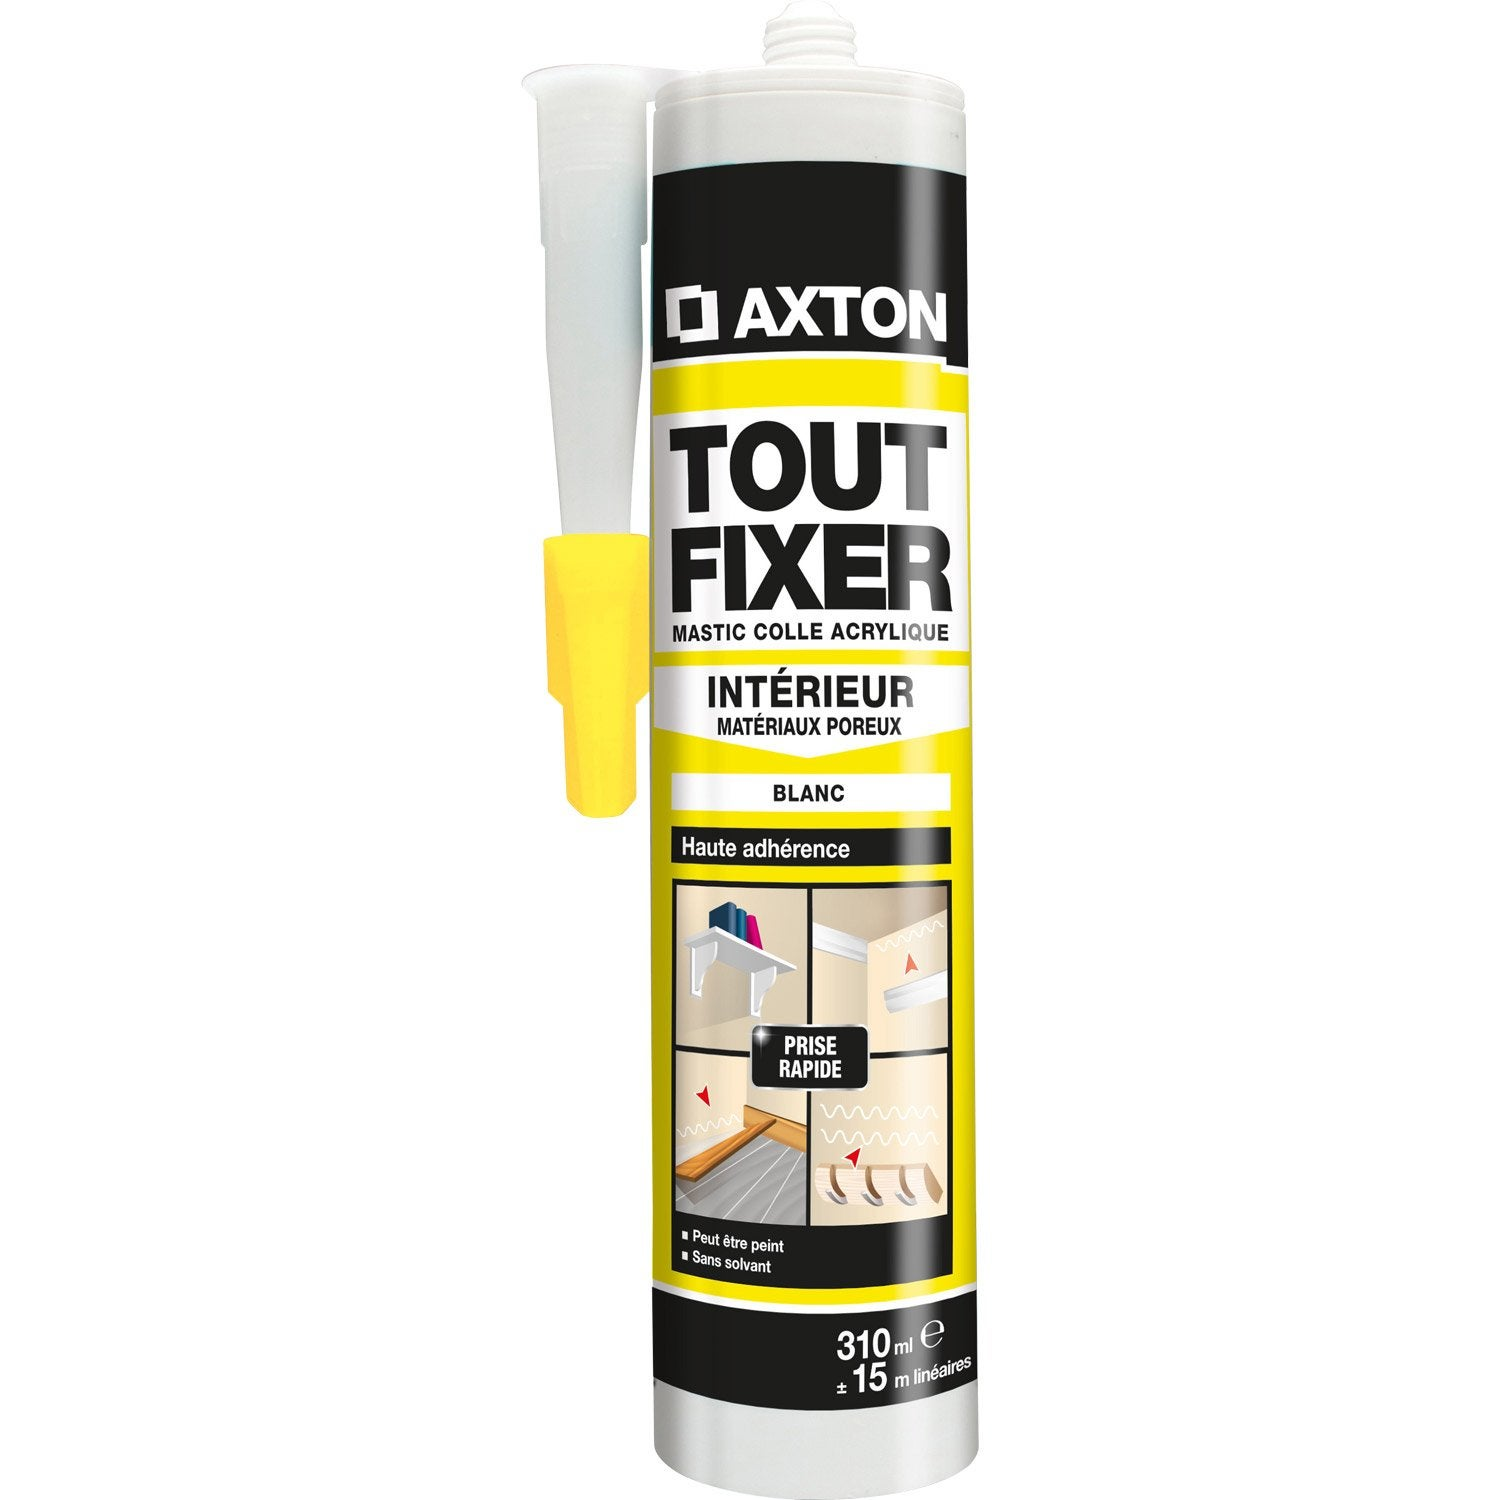 colle mastic tout fixer axton 310 ml leroy merlin. Black Bedroom Furniture Sets. Home Design Ideas